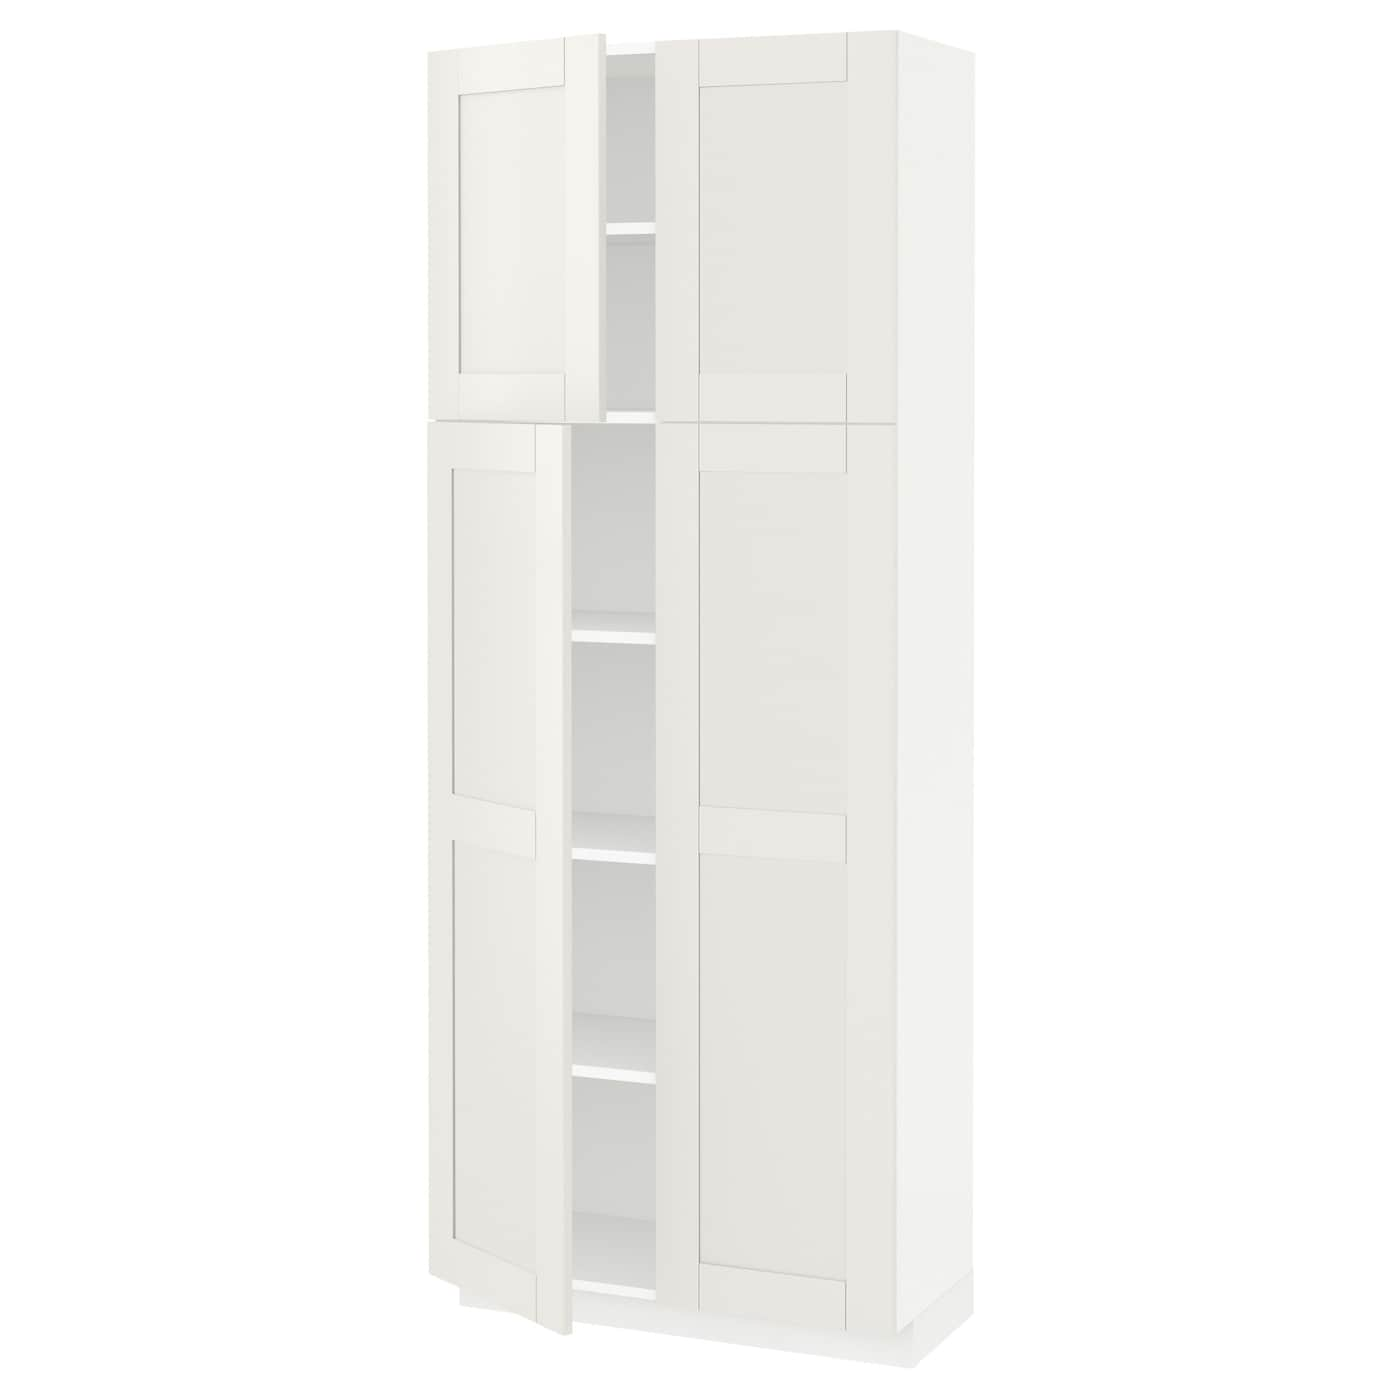 IKEA METOD high cabinet with shelves/4 doors Sturdy frame construction, 18 mm thick.